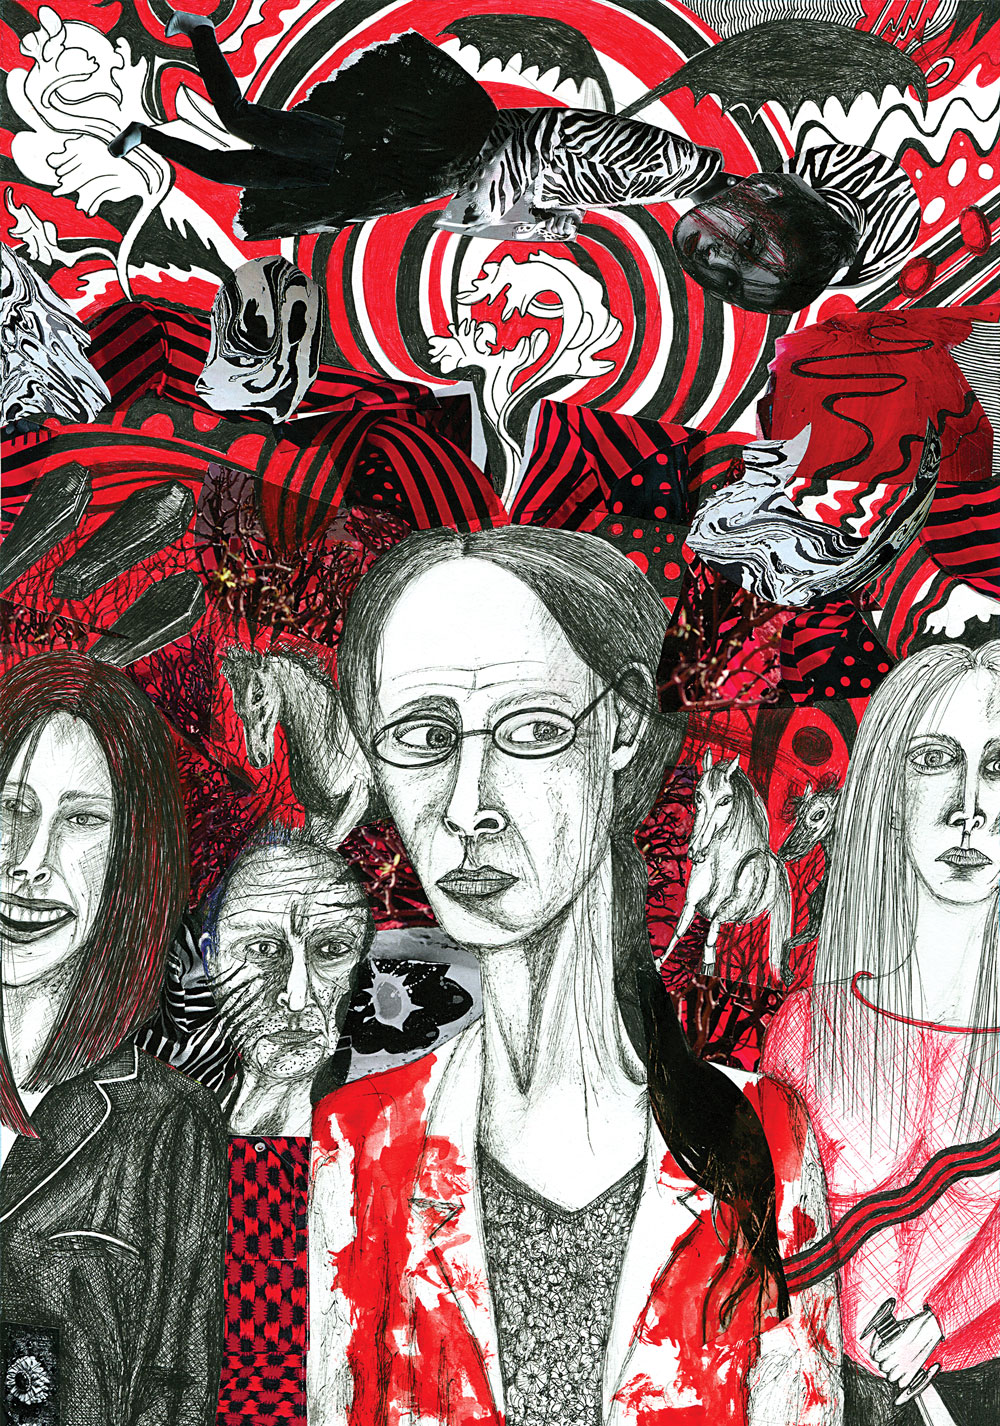 A red, white and black illustration of different characters from the films being reviewed in this piece set against a psychedelic background.